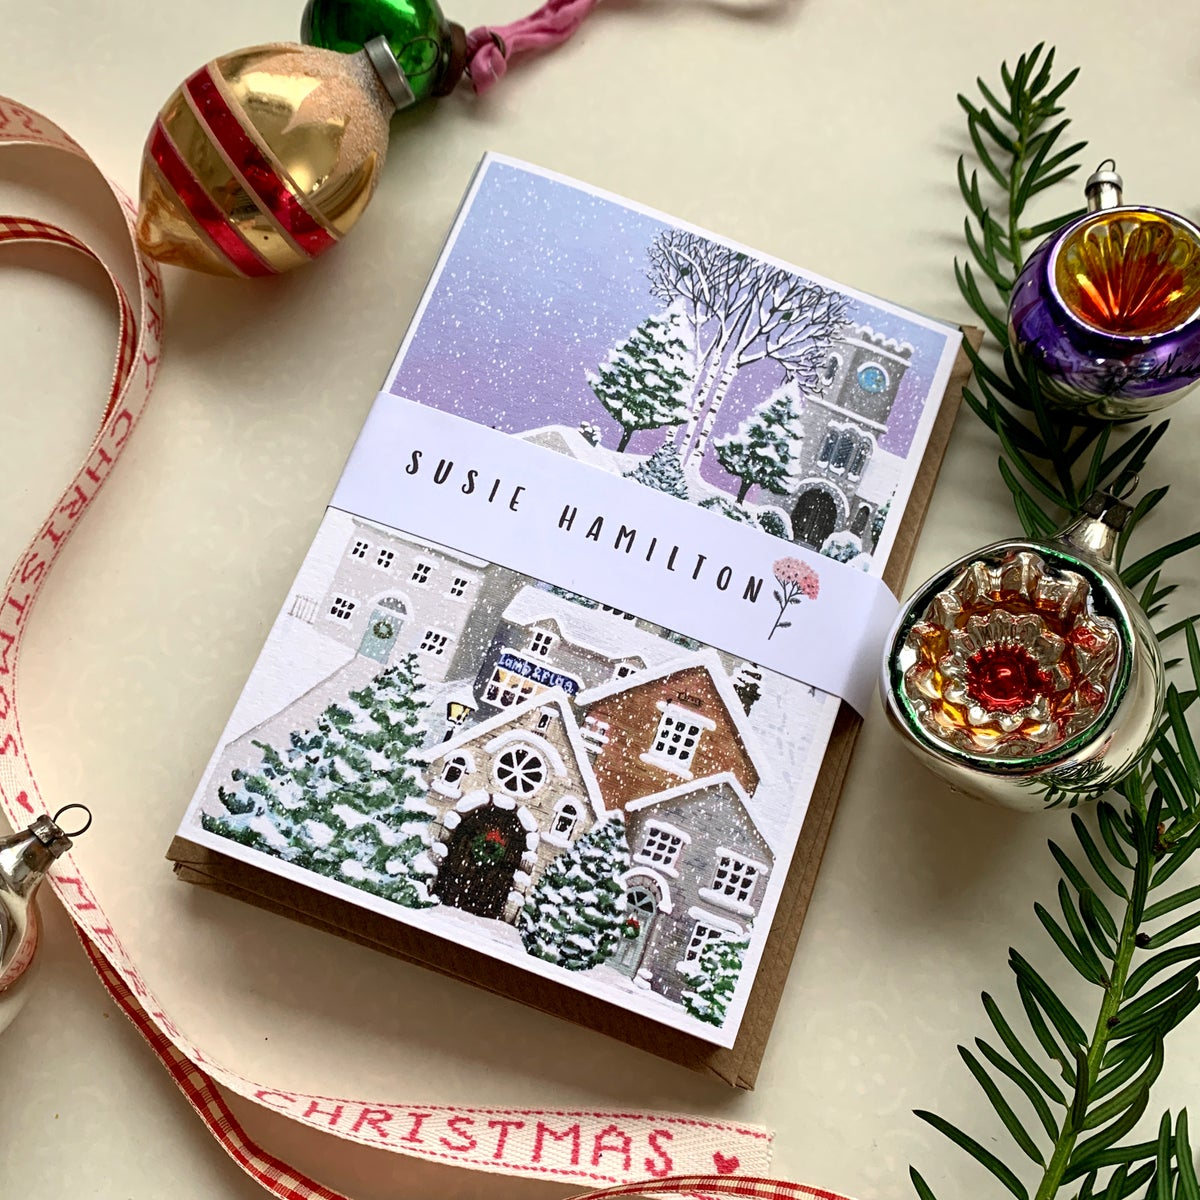 The Collector's Set of 12 Christmas Cards